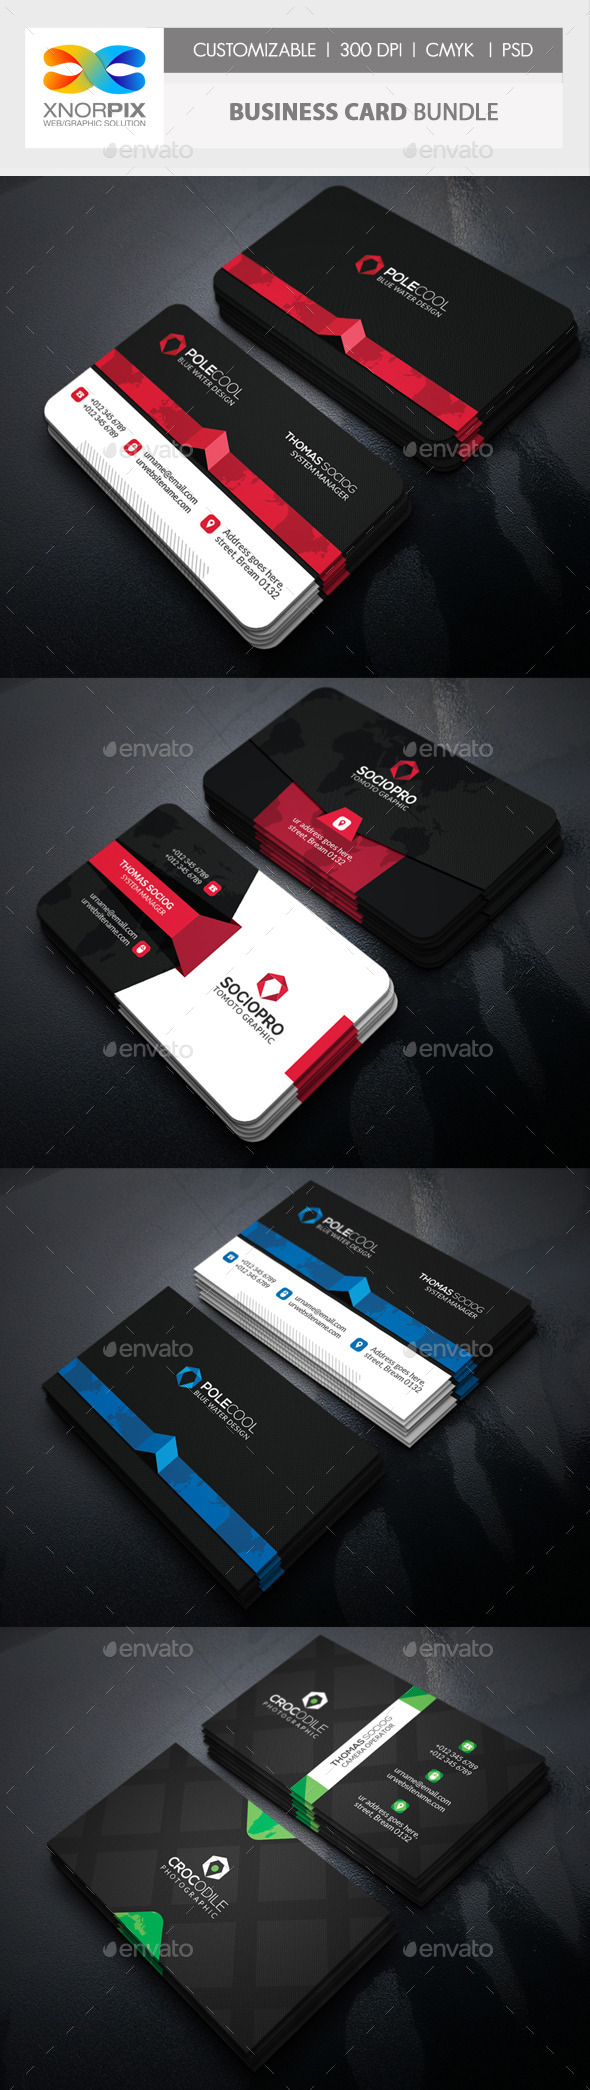 GraphicRiver Business Card Bundle 3 in 1-Vol 55 11830807